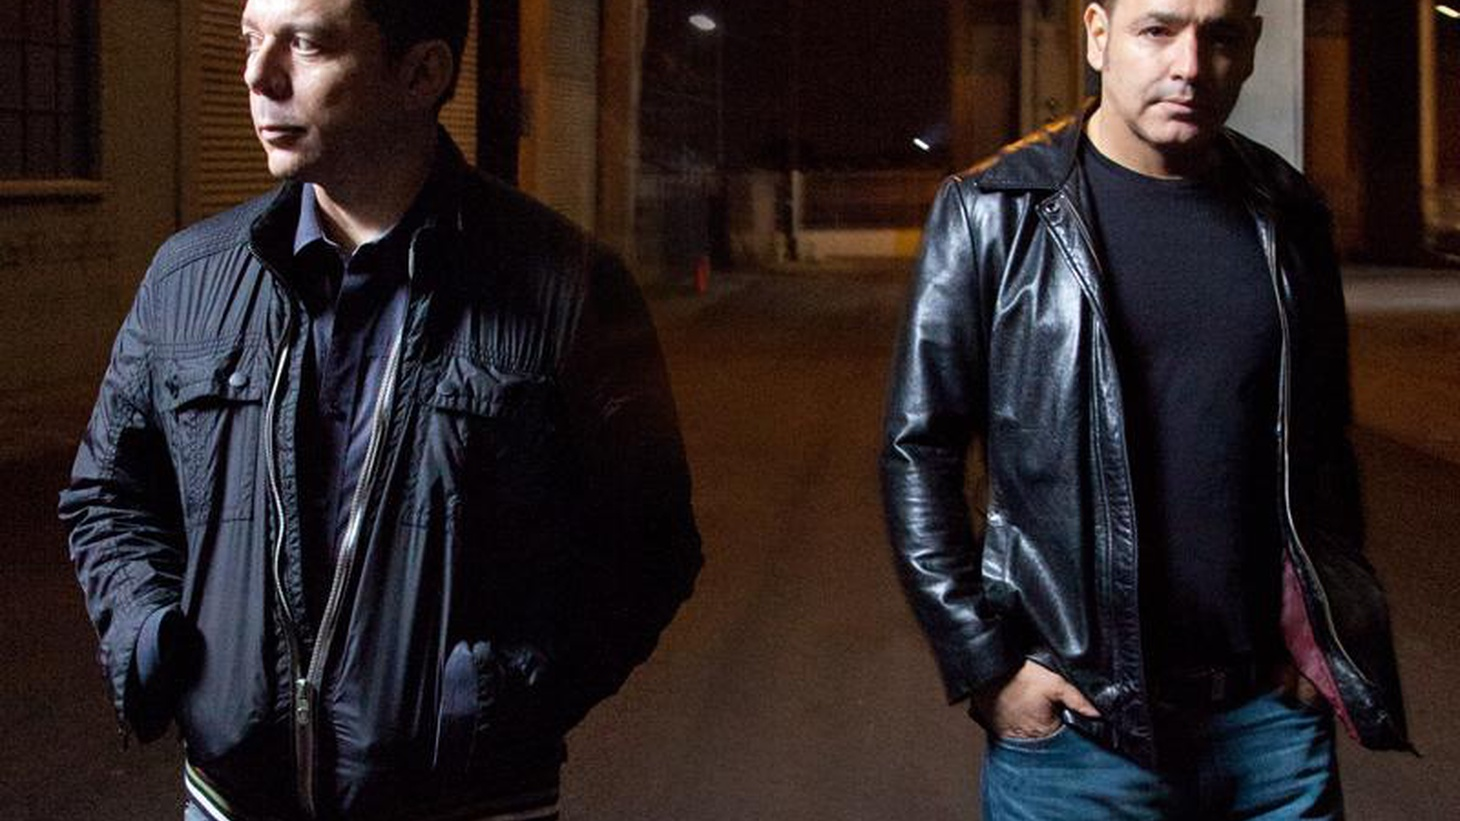 Platinum-selling EDM duo Crystal Method will make history in our studios by performing live with a full band for the first time in their 20-year history.